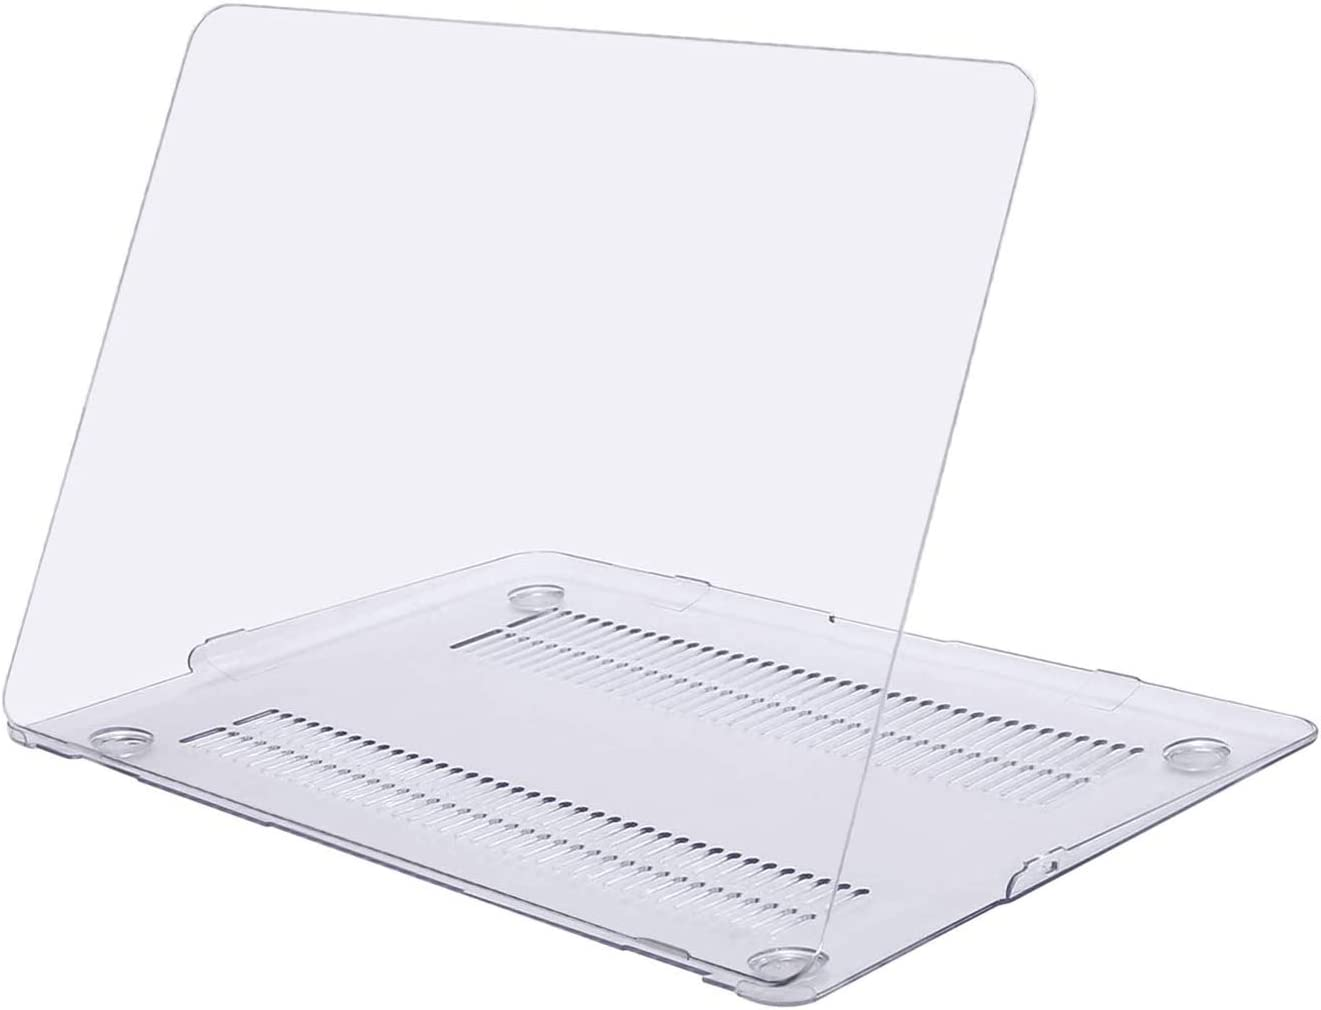 MOSISO MacBook Air 13 inch Case (Models: A1369 & A1466, Older Version 2010-2017 Release), Plastic Hard Shell Case Cover Only Compatible with MacBook Air 13 inch, Crystal Clear